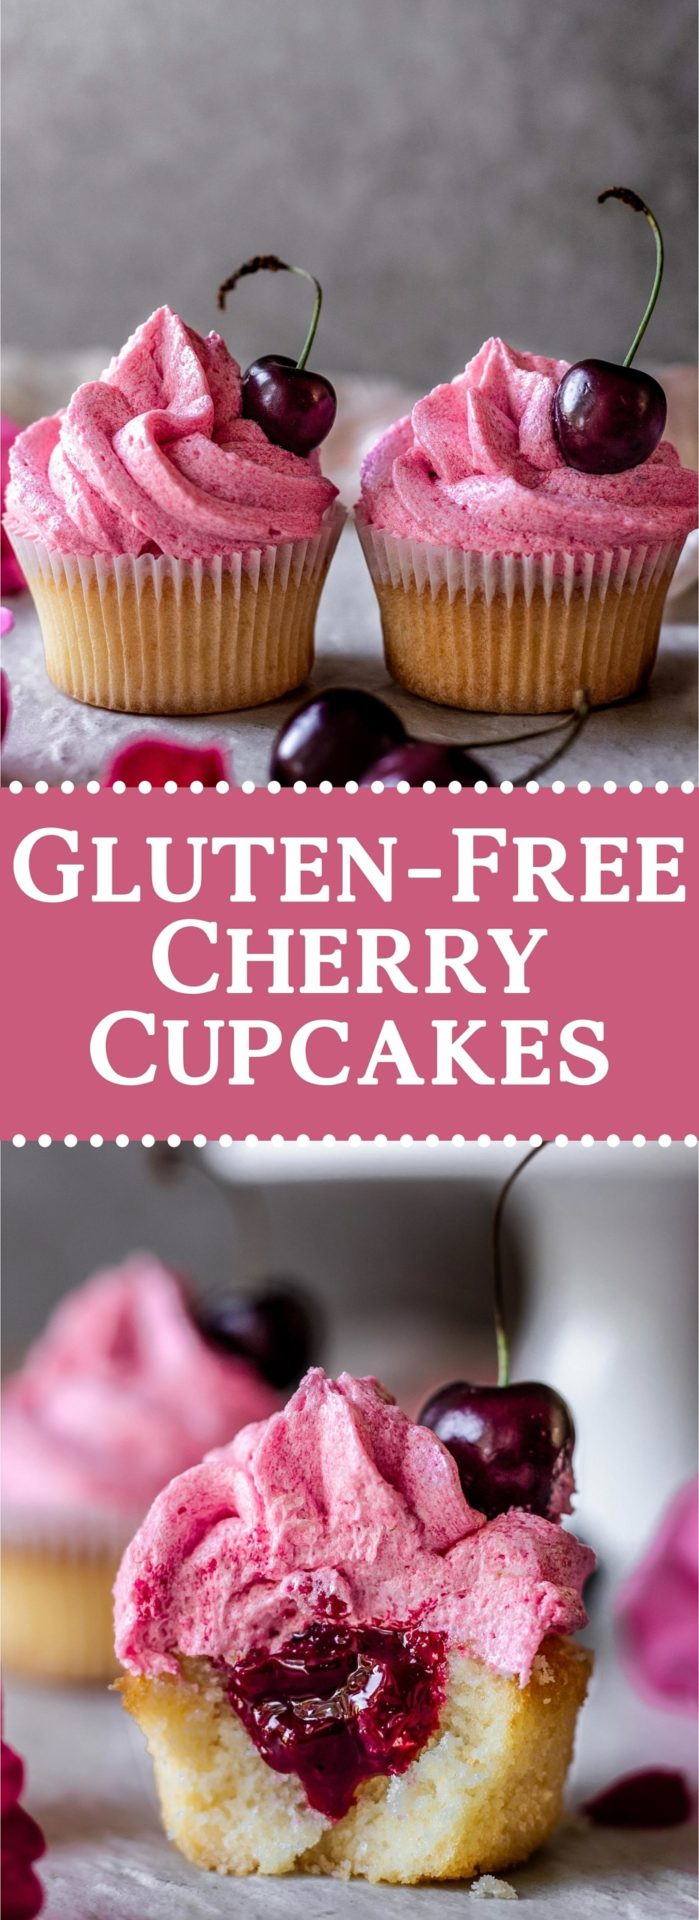 These Gluten-Free Cherry Cupcakes are tender and spongy, light, infused with cherries, fruity, and just so delicious!